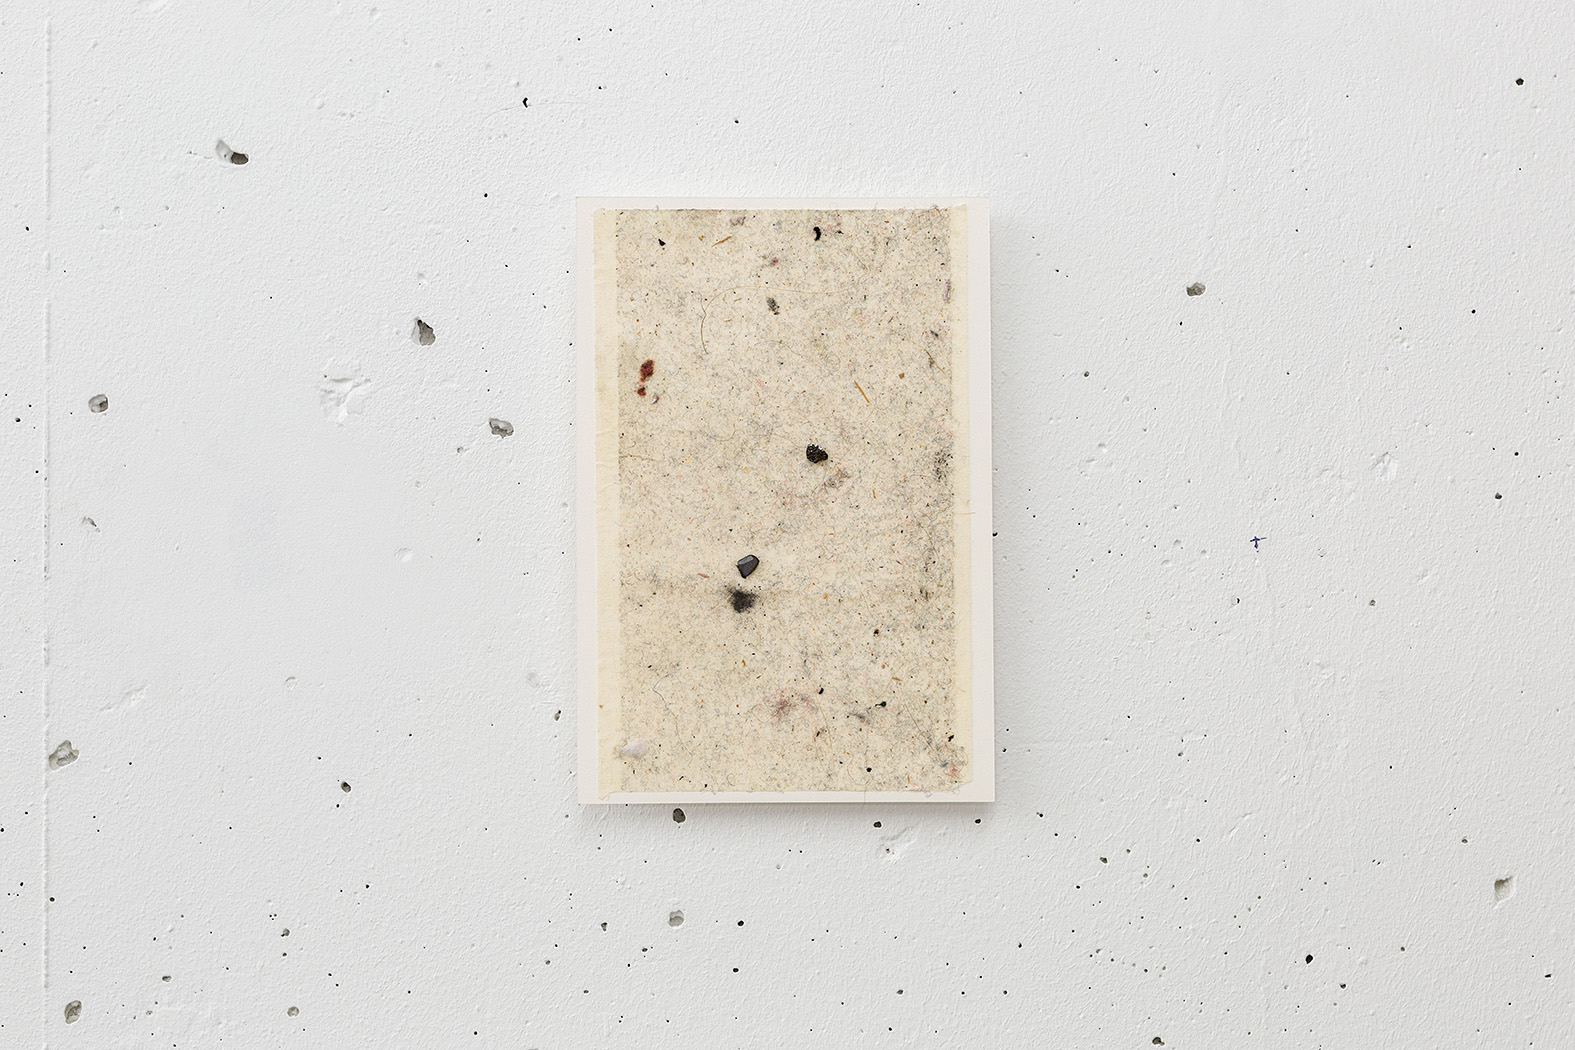 Dust Painting ,2017 dust, hairs,graphite on adhesive, mounted on paper 16 x 11 cm Installation view,  Room without a view , Arnaud Deschin Galerie, Paris, 2017